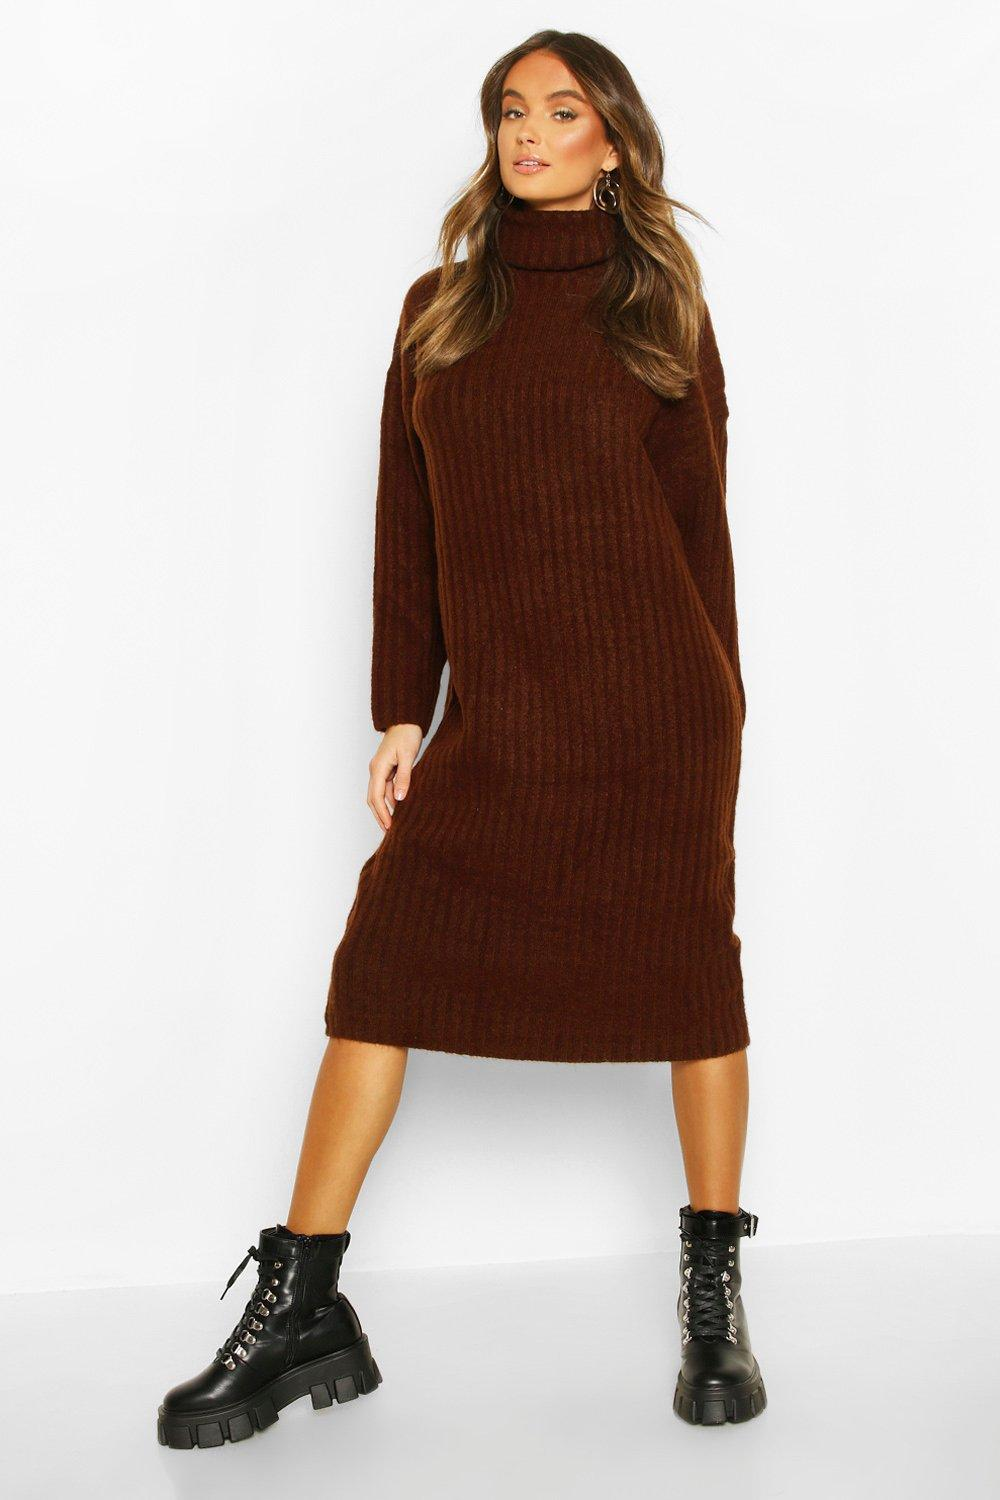 Womens Roll Neck Rib Knitted Dress - chocolate - S, Chocolate - Boohoo.com